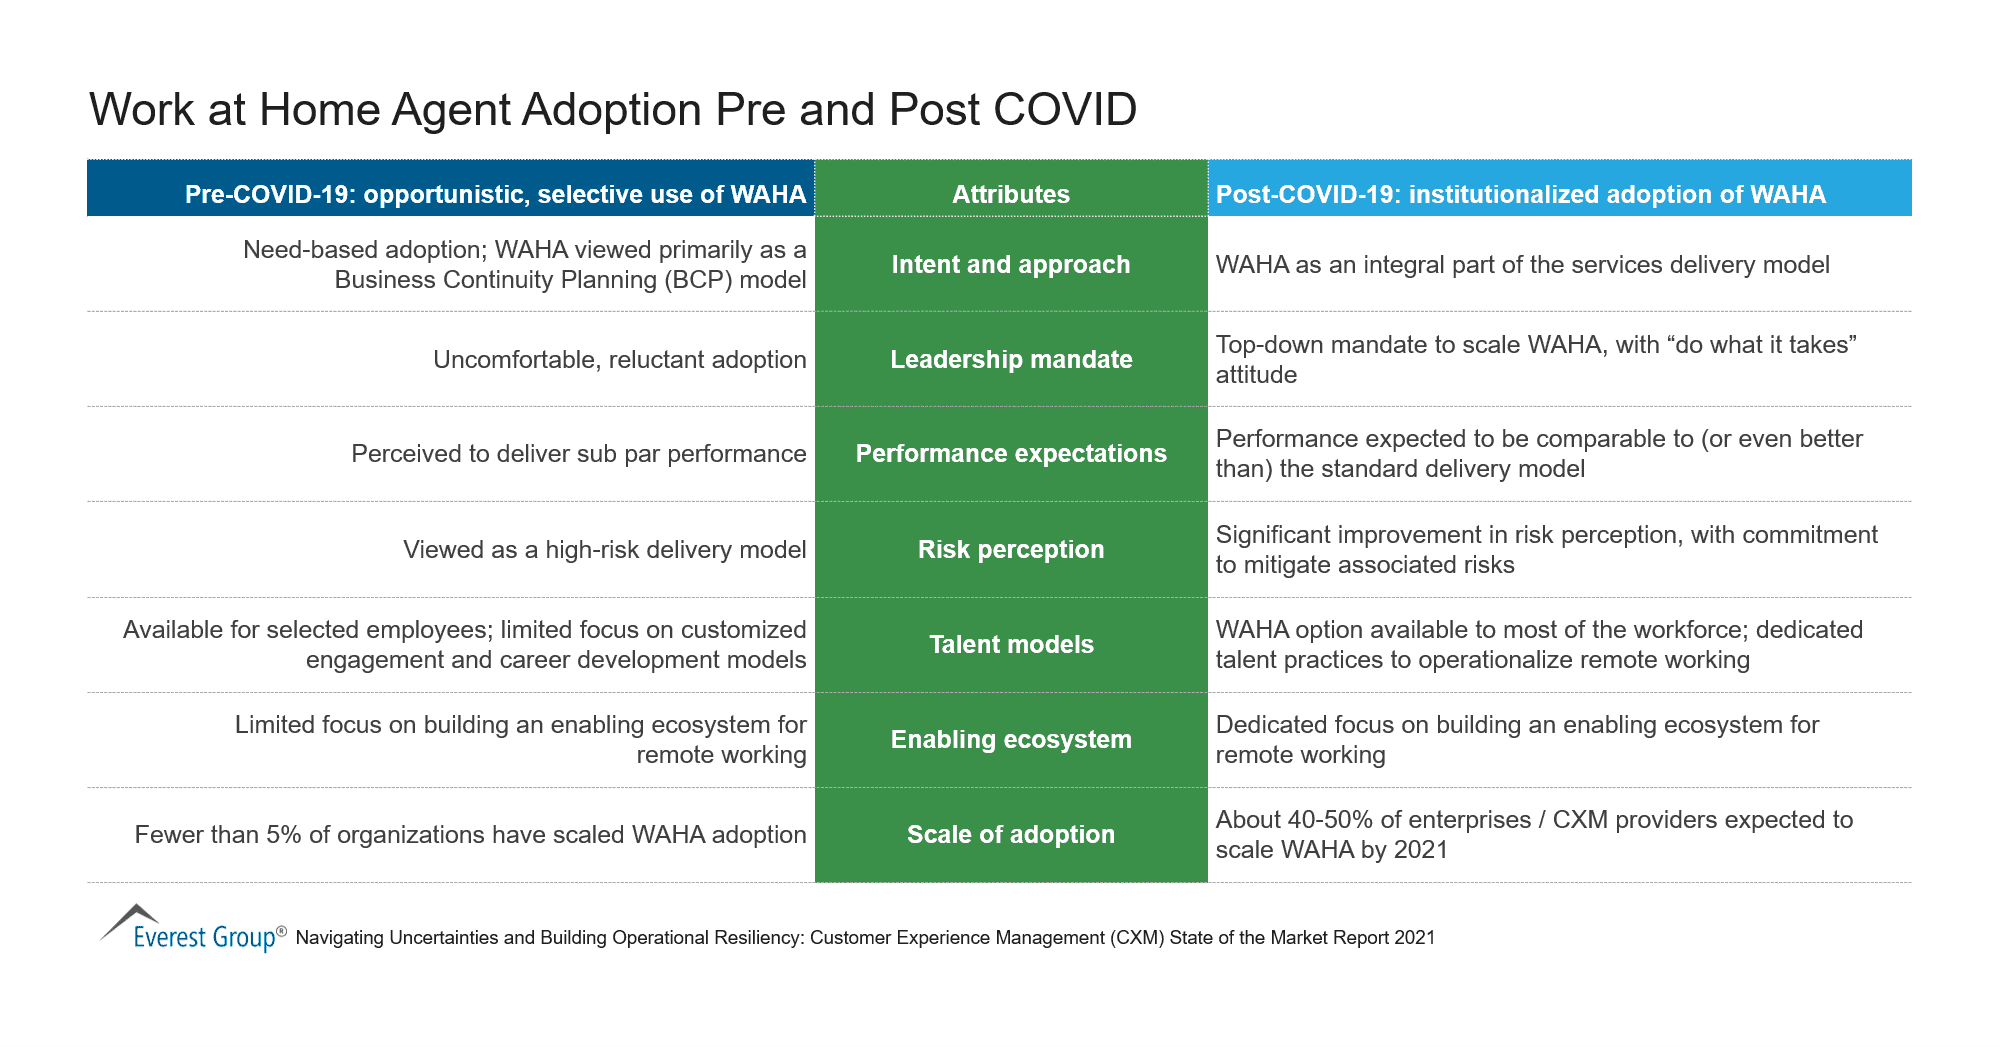 Work at Home Agent Adoption Pre and Post COVID